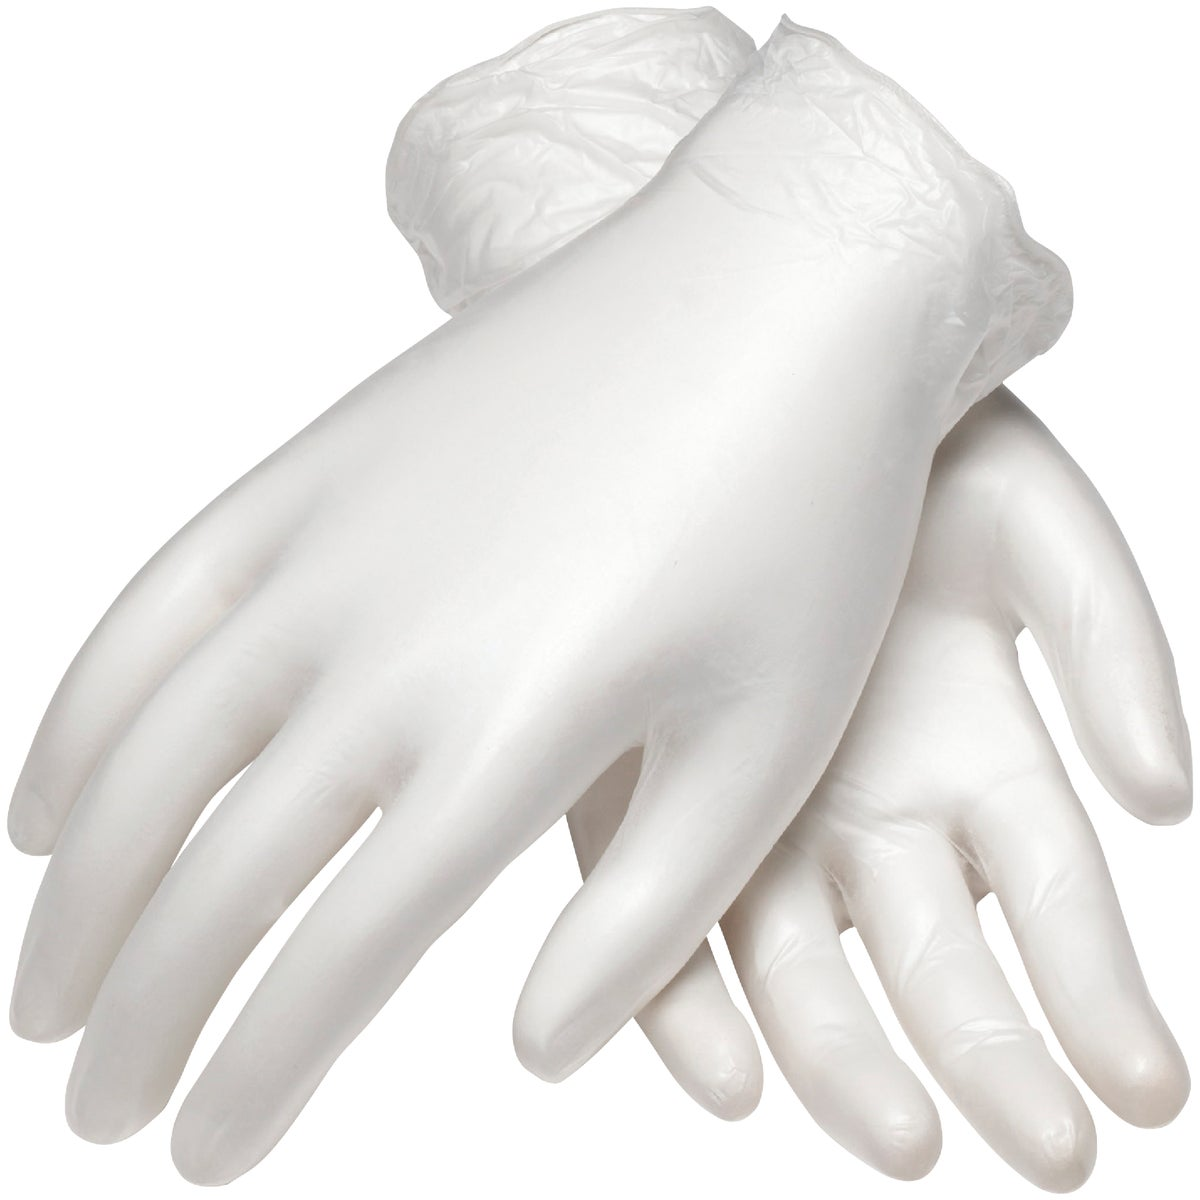 LG POWDERED VINYL GLOVES - 2700/L by West Chester Incom